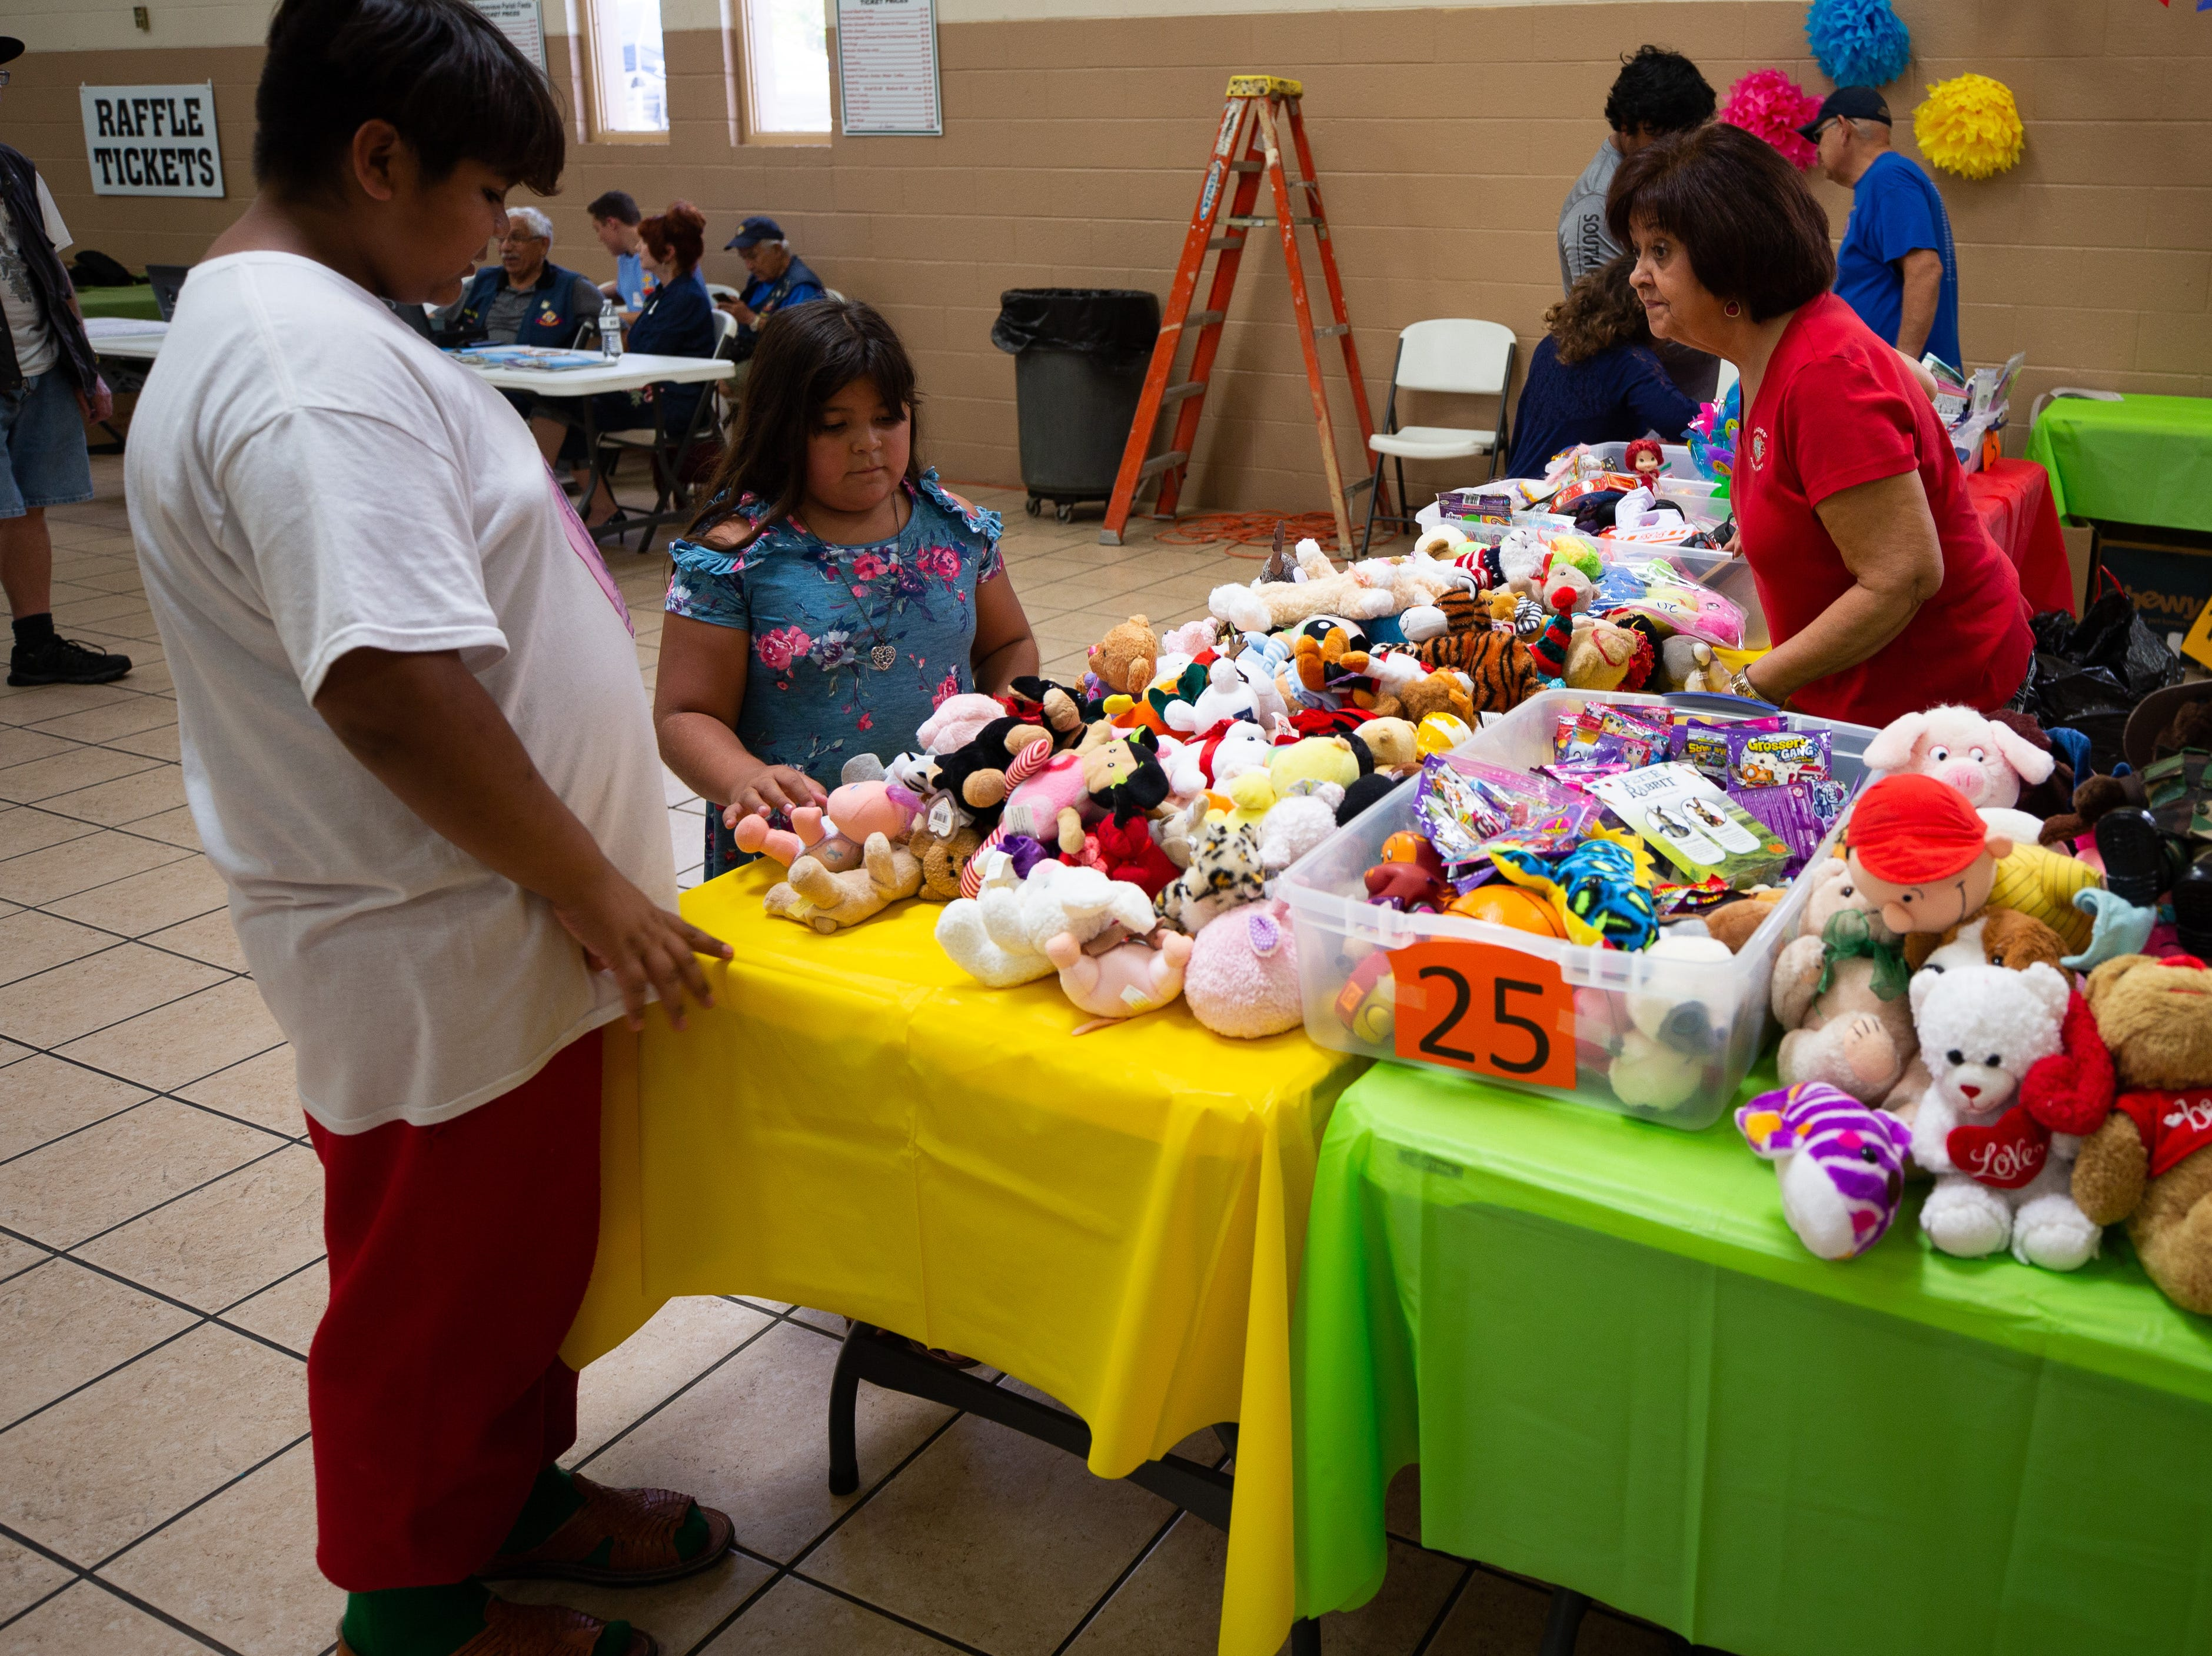 """Mary Tellez assists Ylai Zavala, 13, and Azul Ramos, 9, who spend their """"ticket money"""" on toys and stuffed animals at the St. Genevieve Fiesta on Saturday, Sept. 8, 2018."""